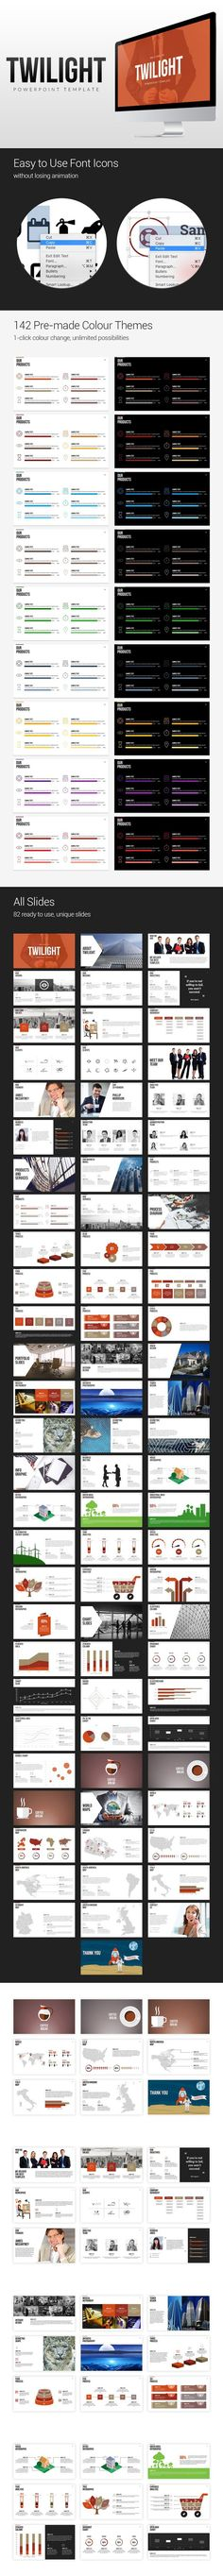 8 modern timeline templates bundle timeline presentation 8 modern timeline templates bundle timeline presentation templates and infographic templates toneelgroepblik Image collections